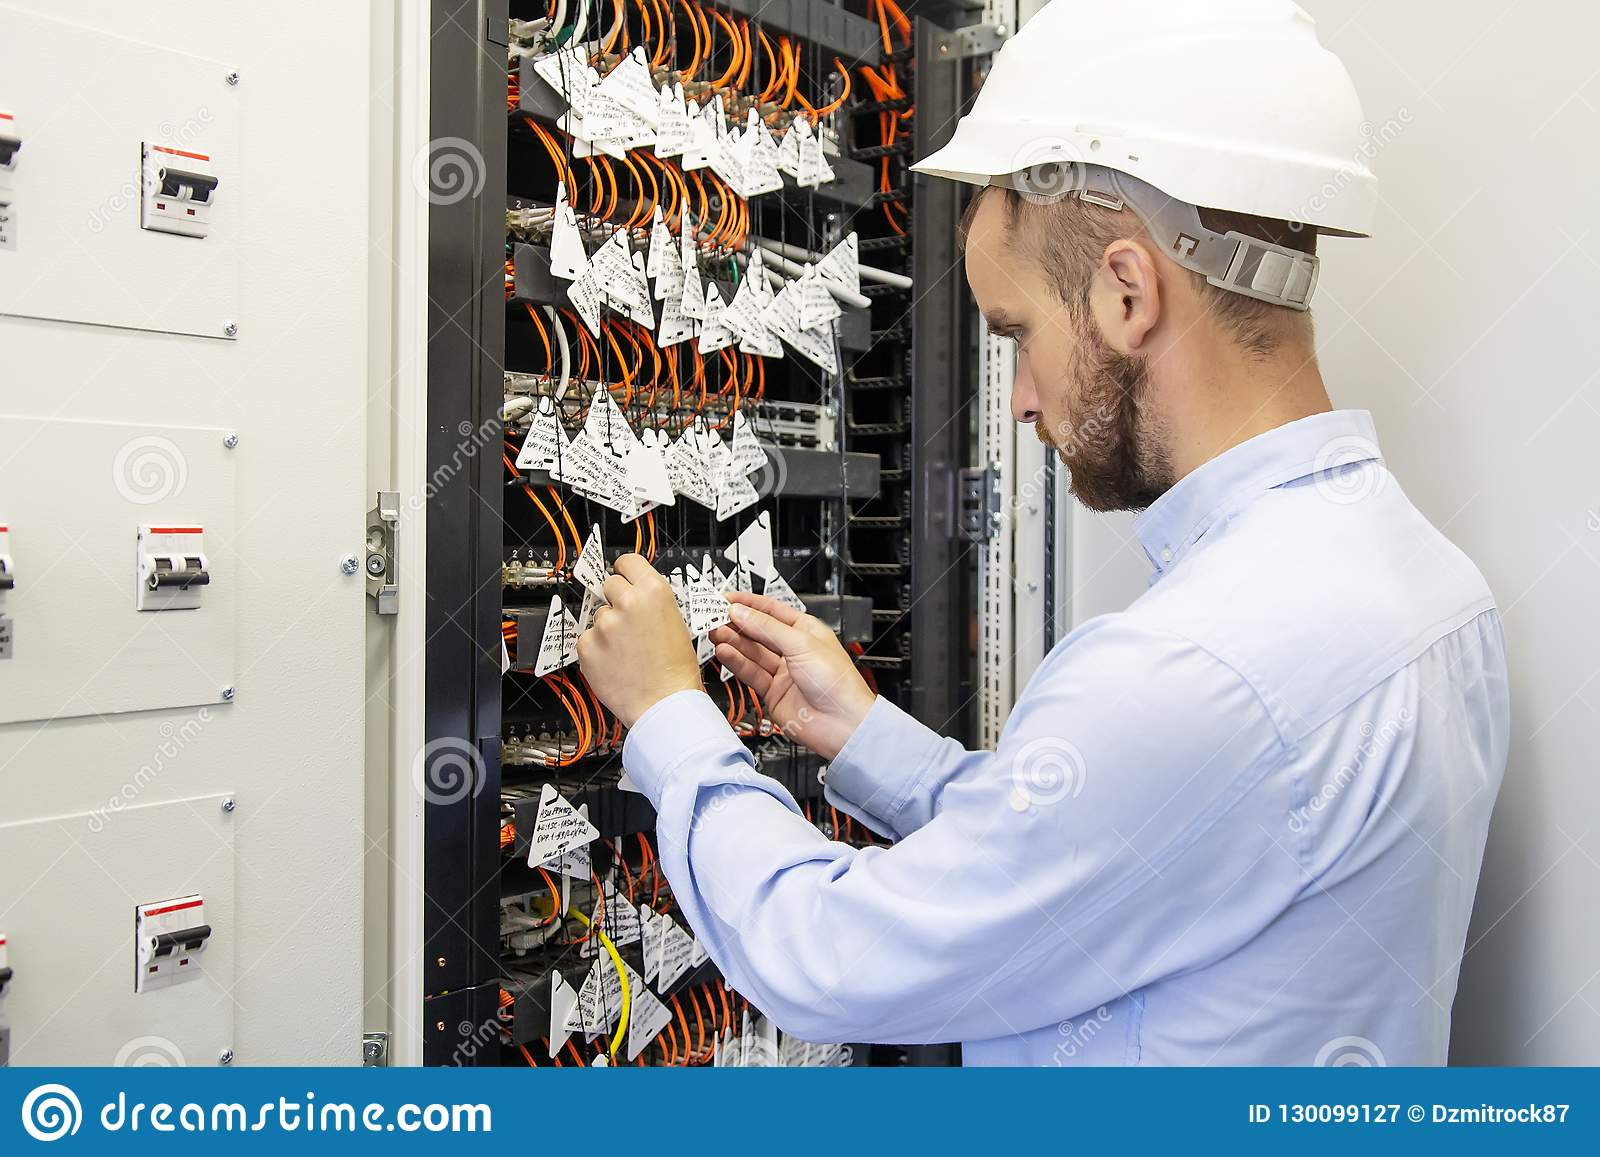 Technician engineer connects optical fibers into communication switch in data center. Service man in datacenter